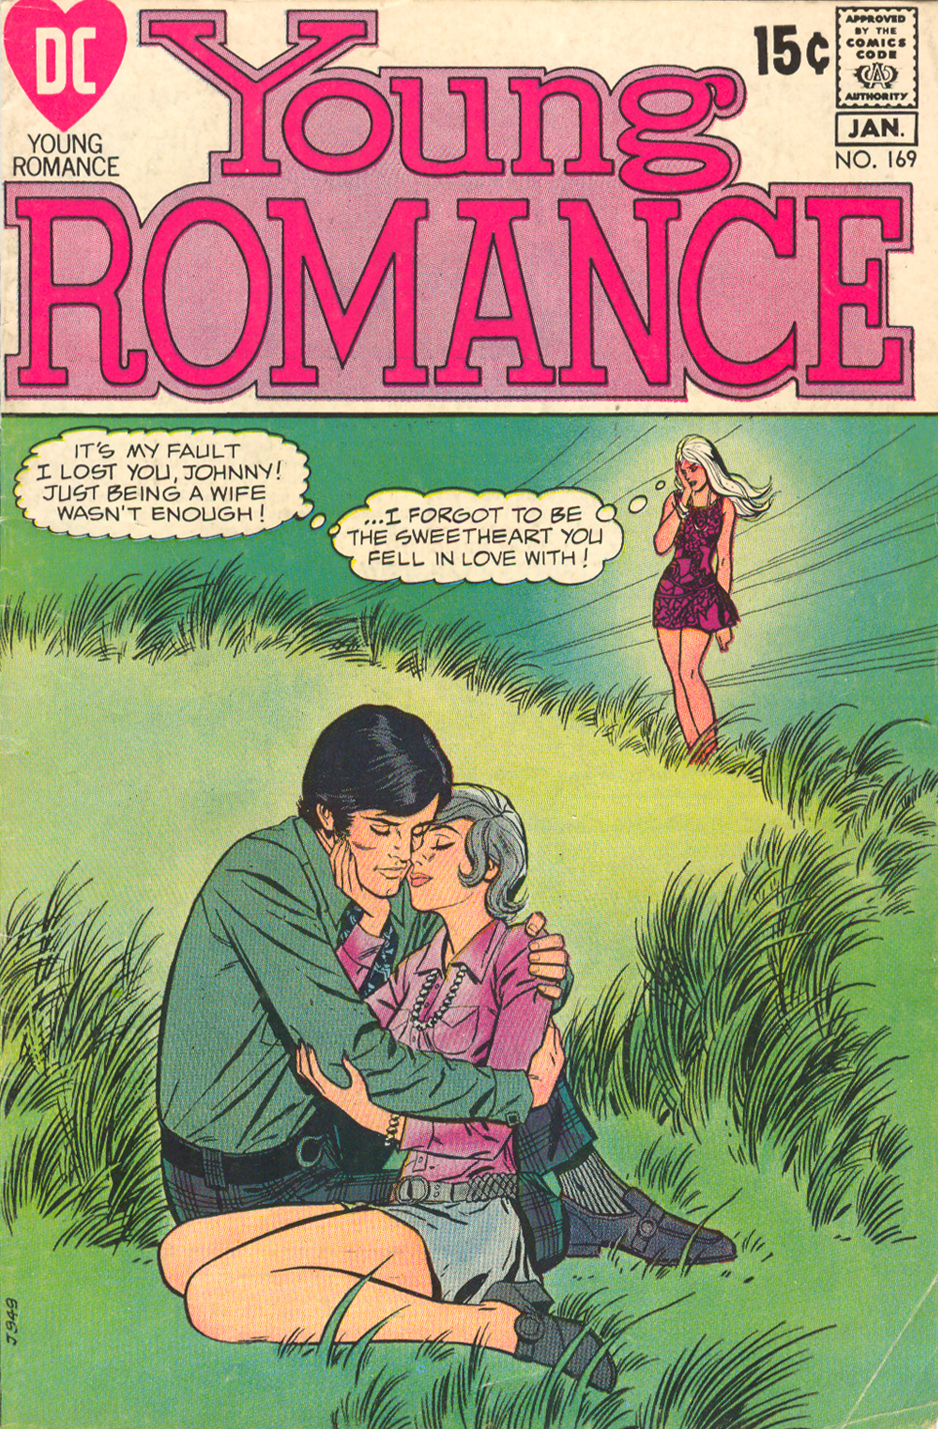 Young Romance #169 (December 1970/January 1971)